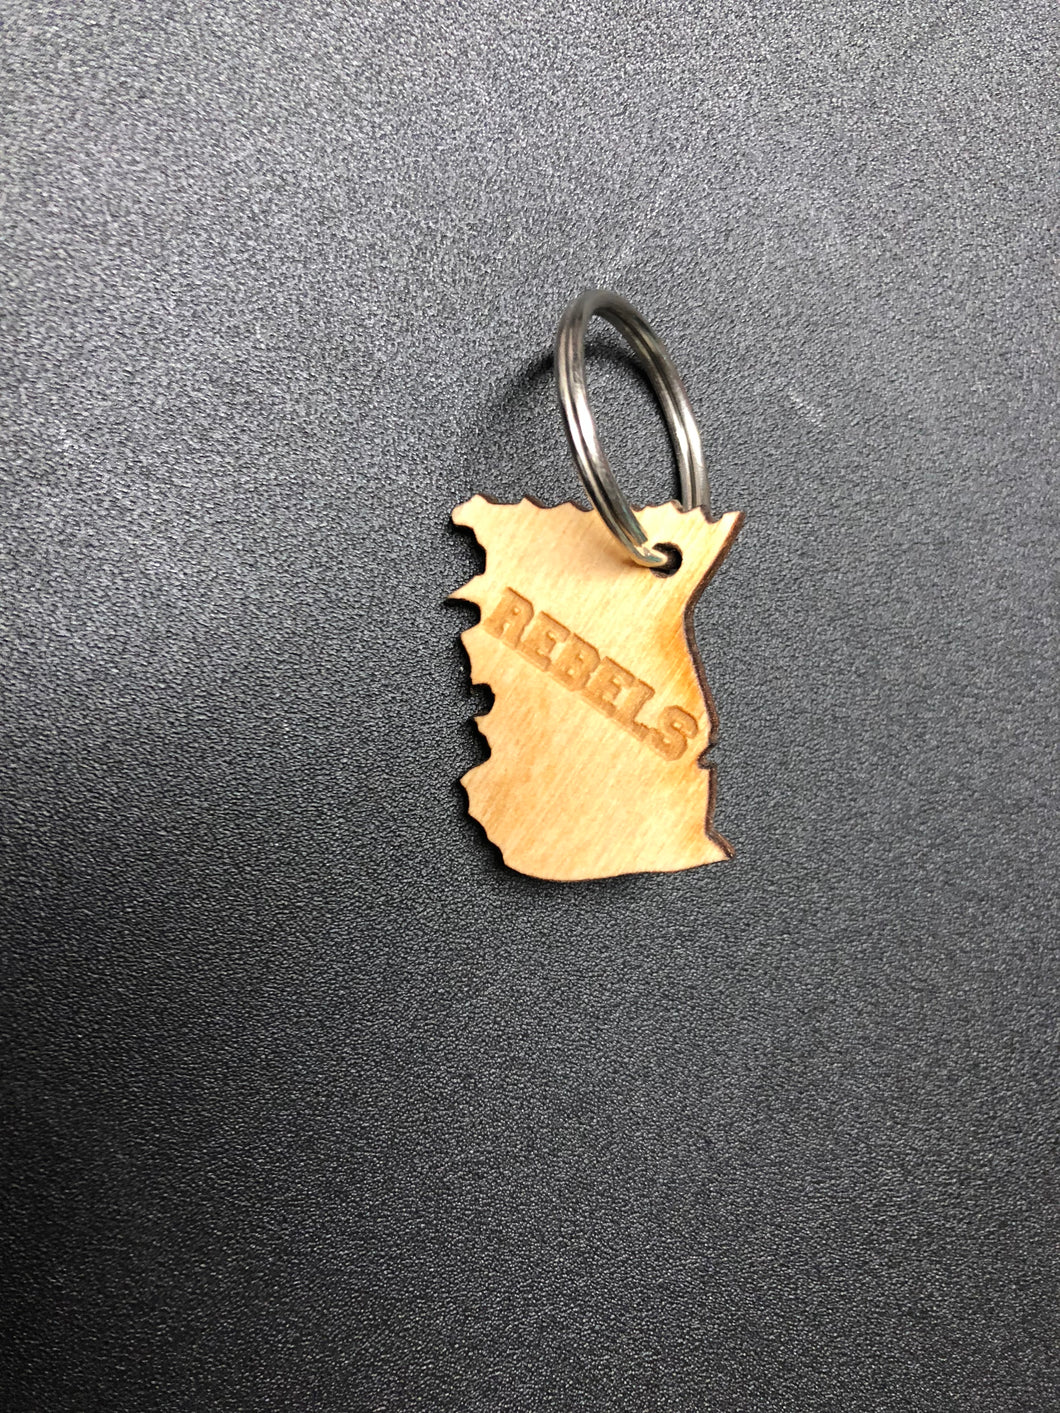 Wooden Rebels Keychain